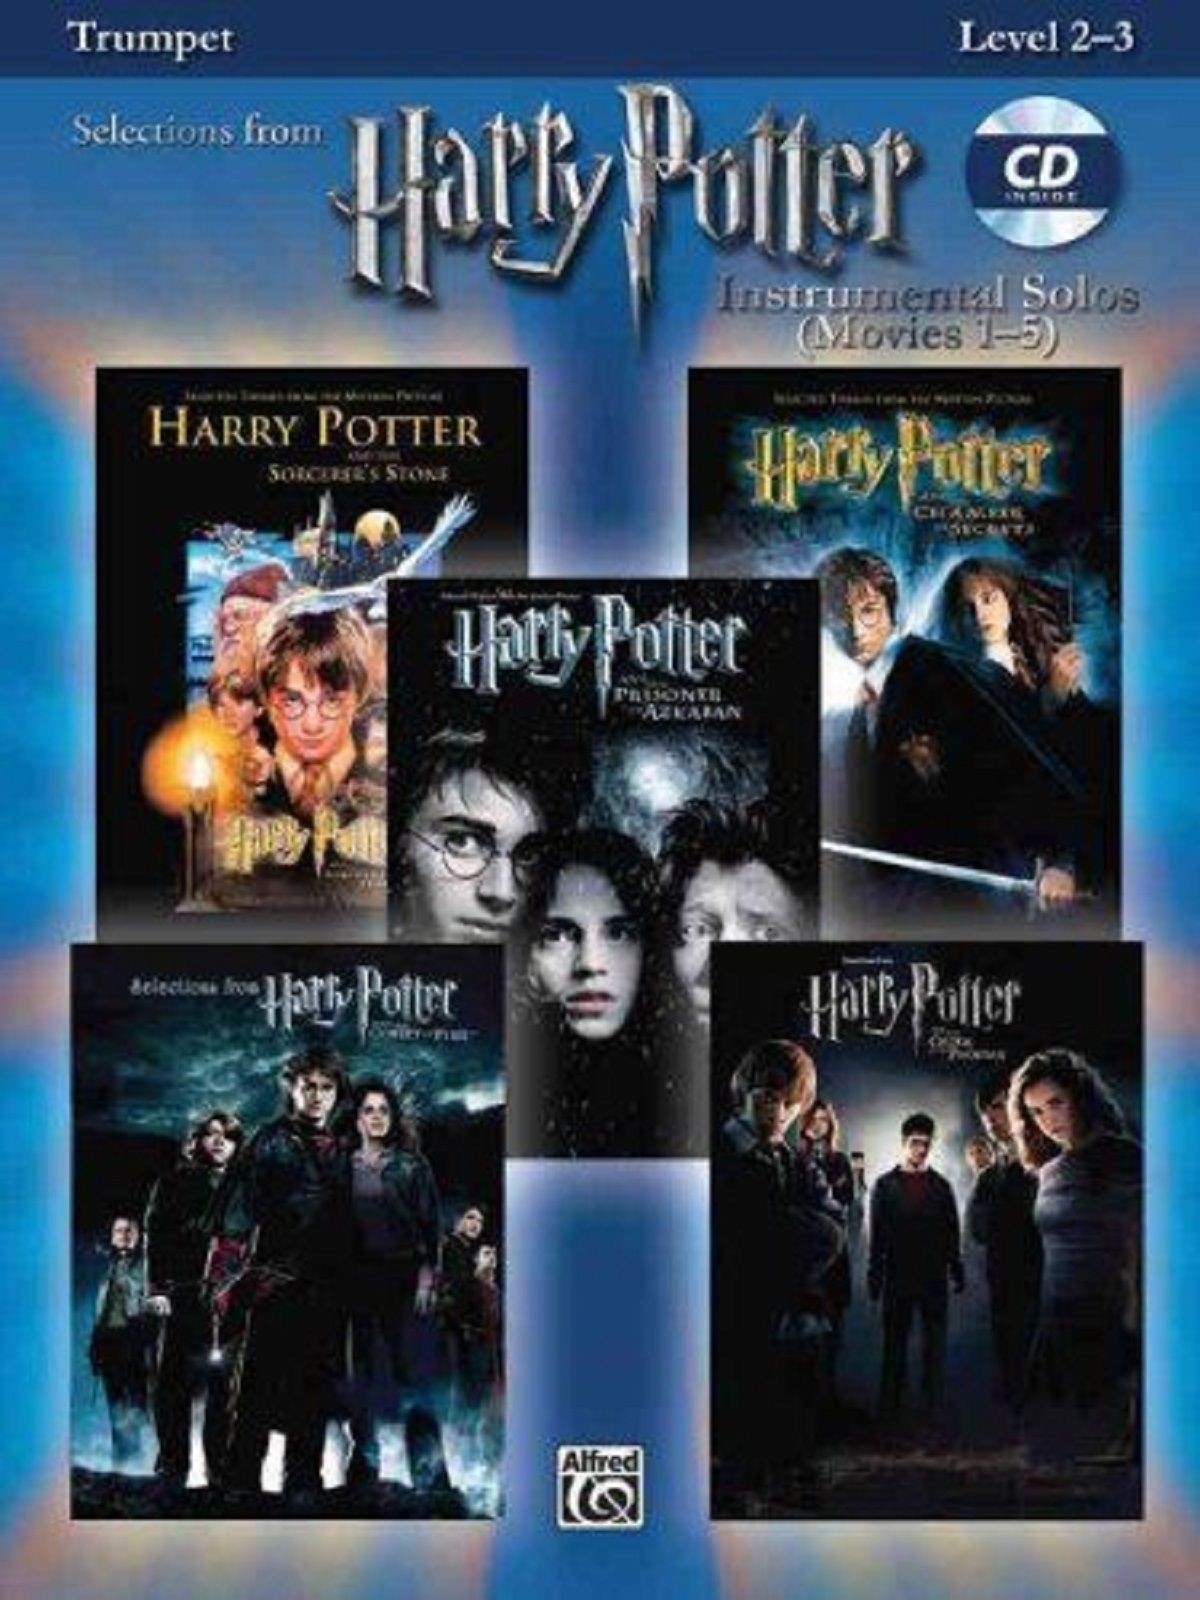 Harry Potter Instrumental Solos Movies 1-5 Trumpet Level 2-3 Book CD S124